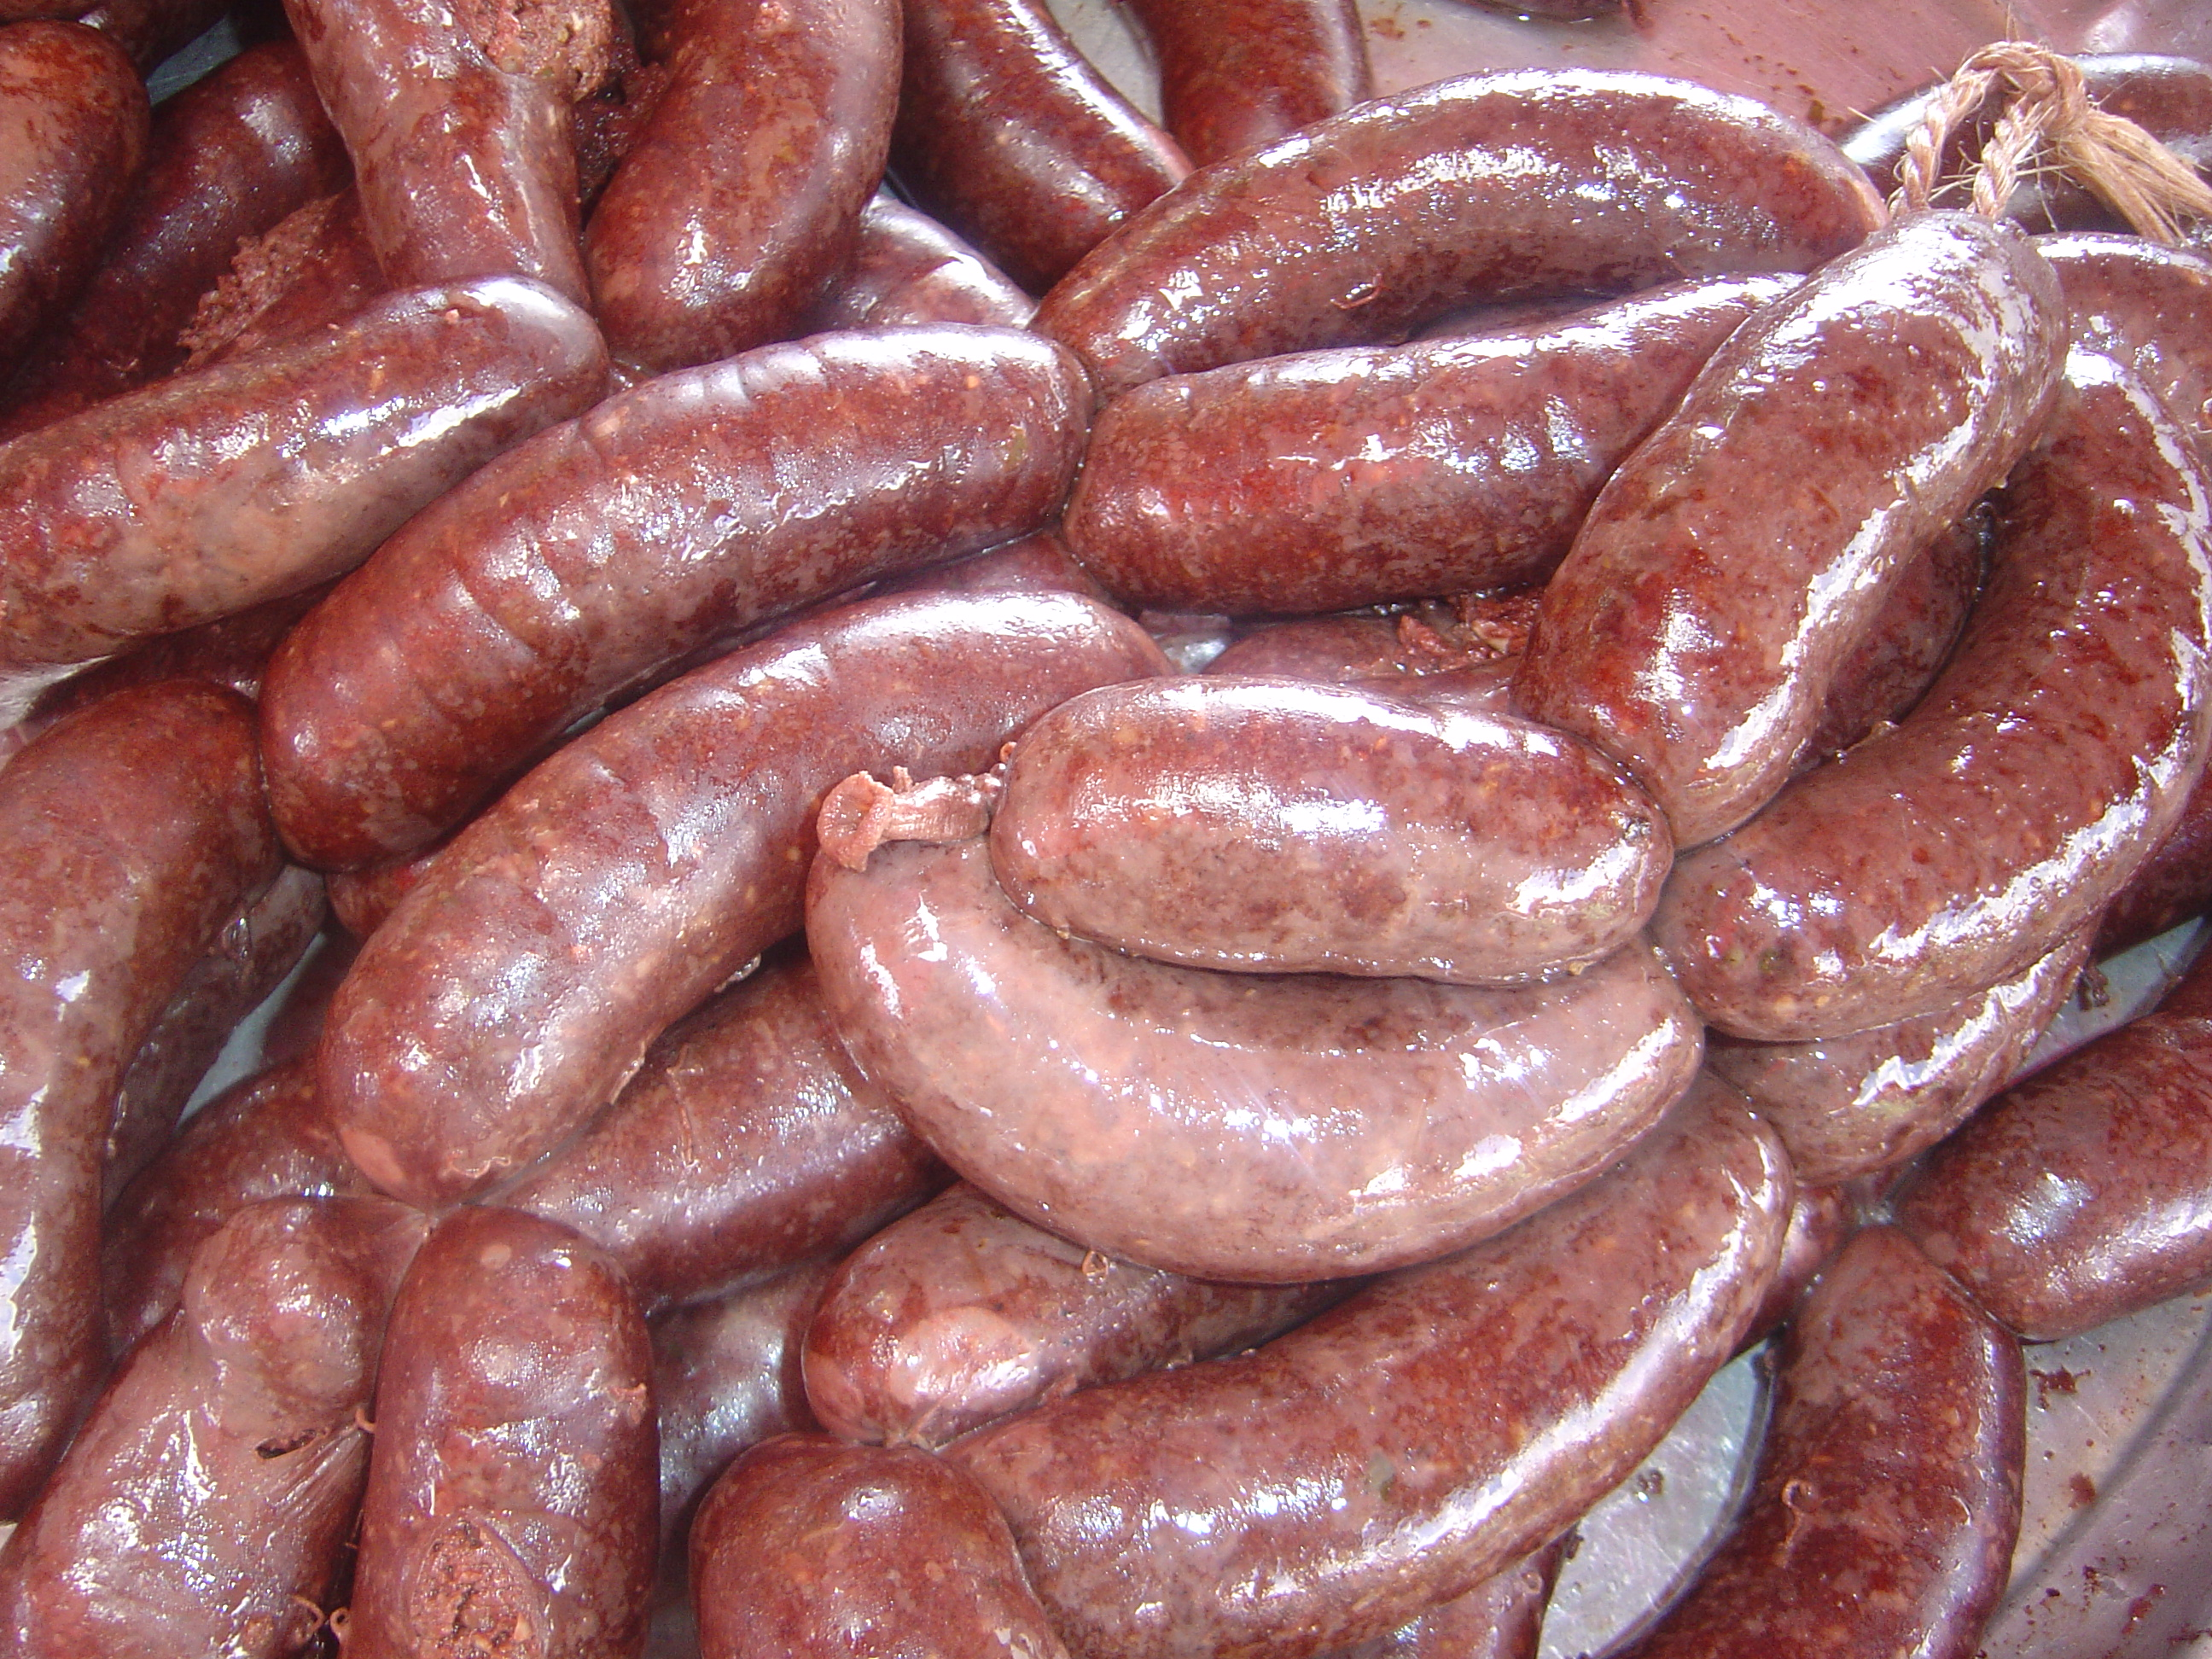 Reunion_sausages_dsc07796.jpg